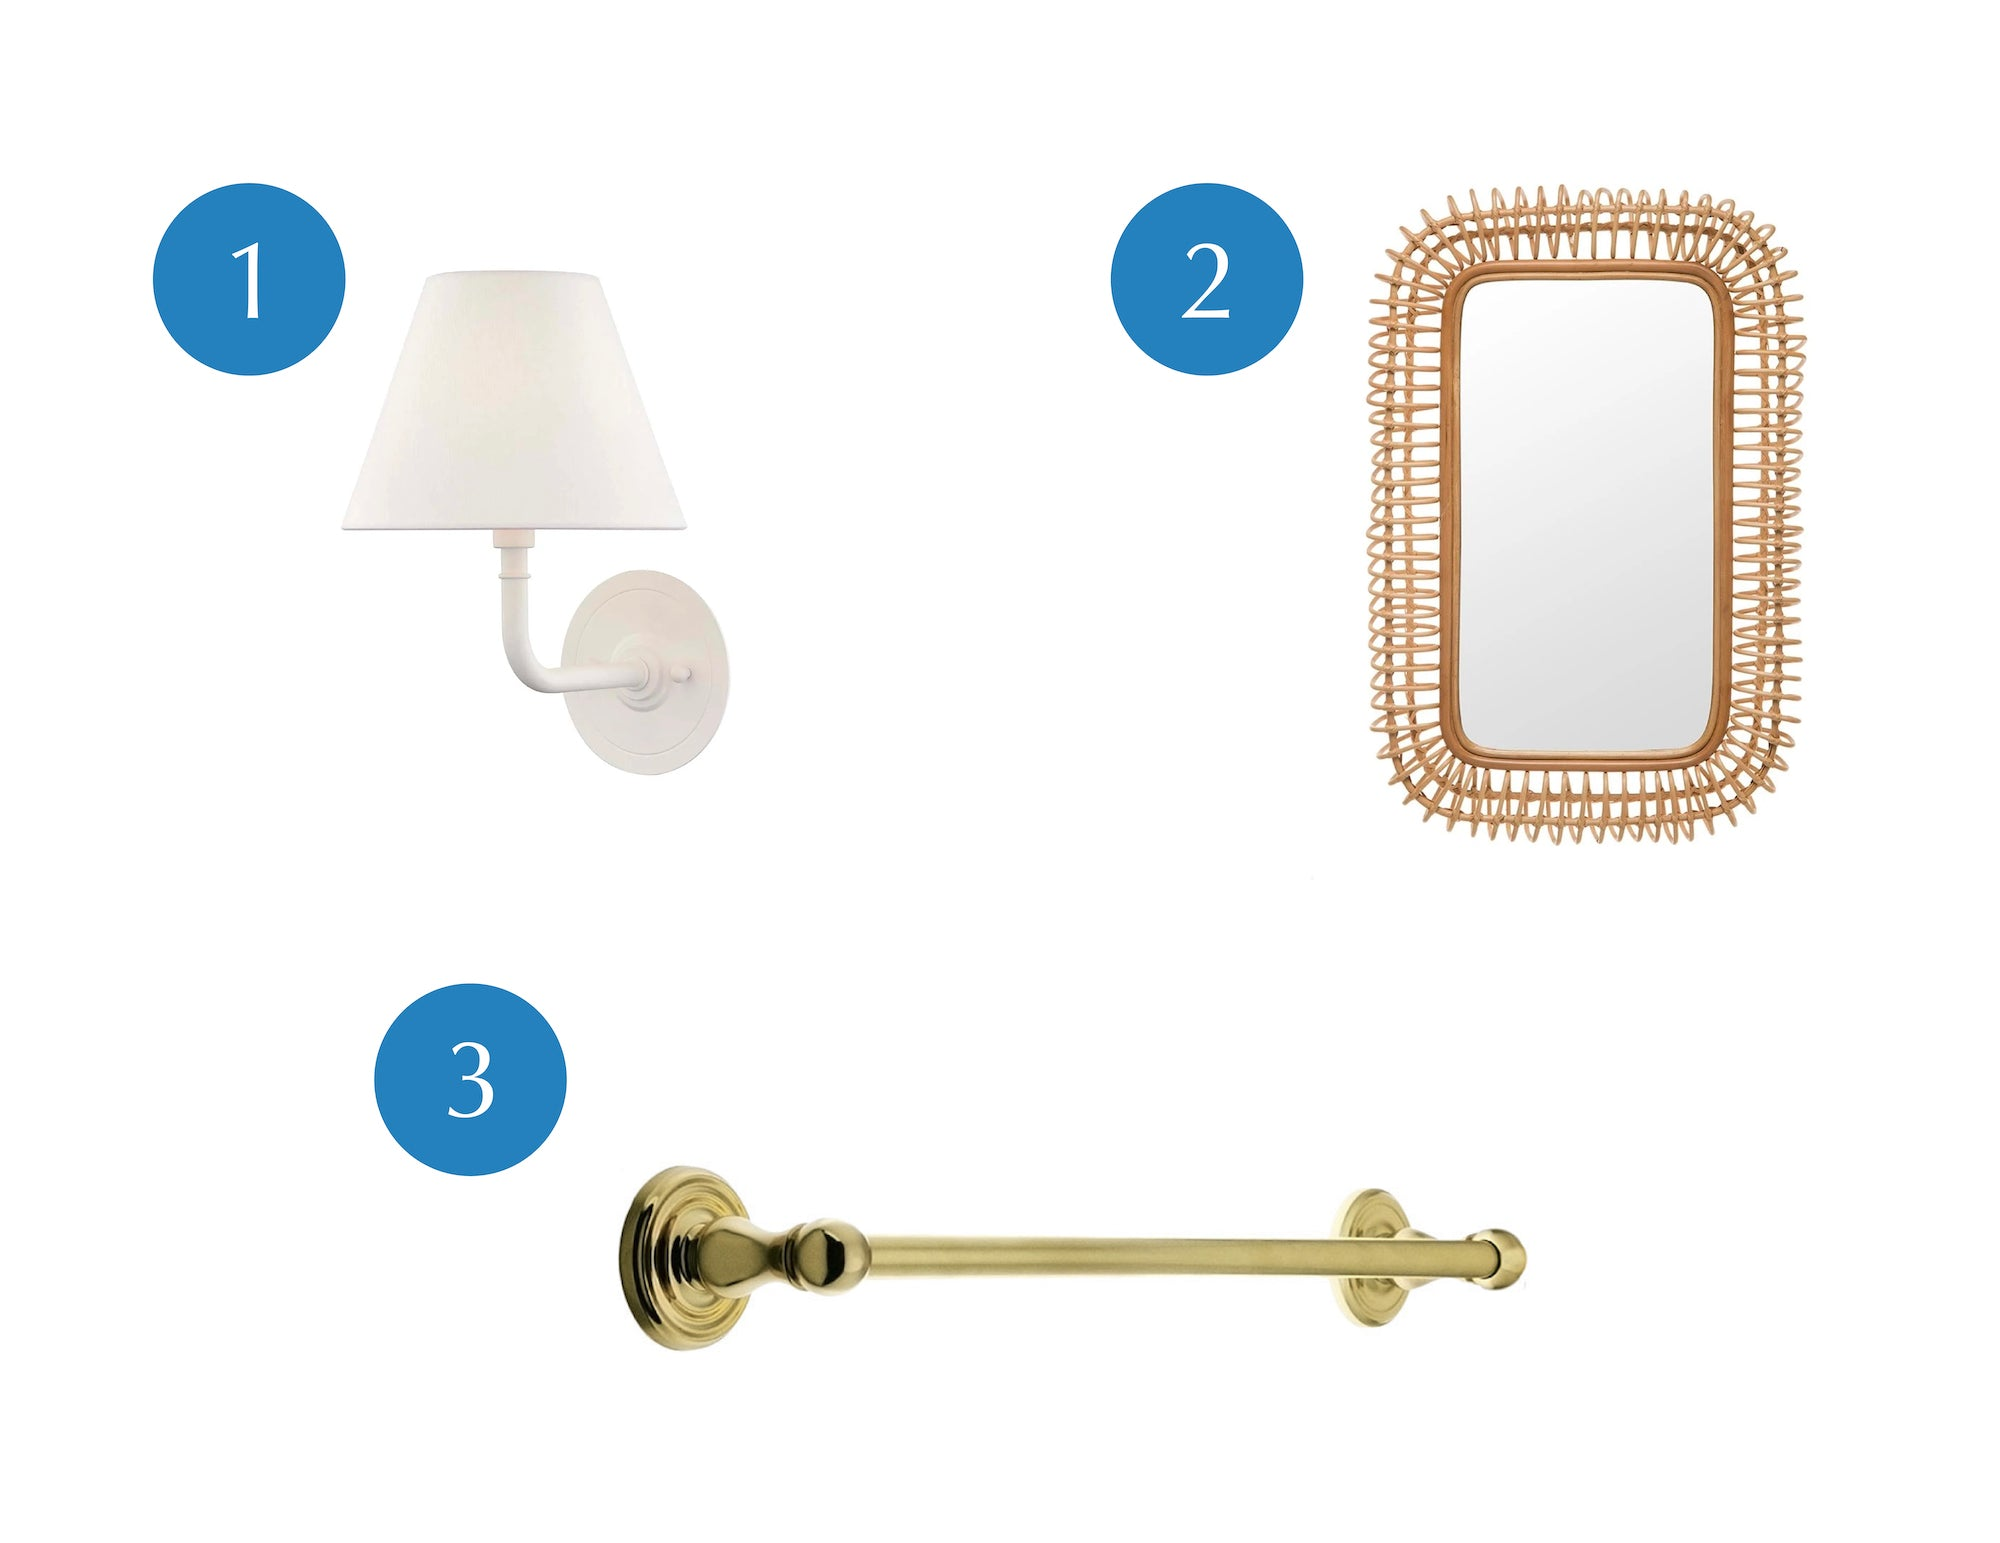 Jeremy recommends switching out light fixtures, adding a statement mirror, and switching out hardware when looking to update a rental bathroom!